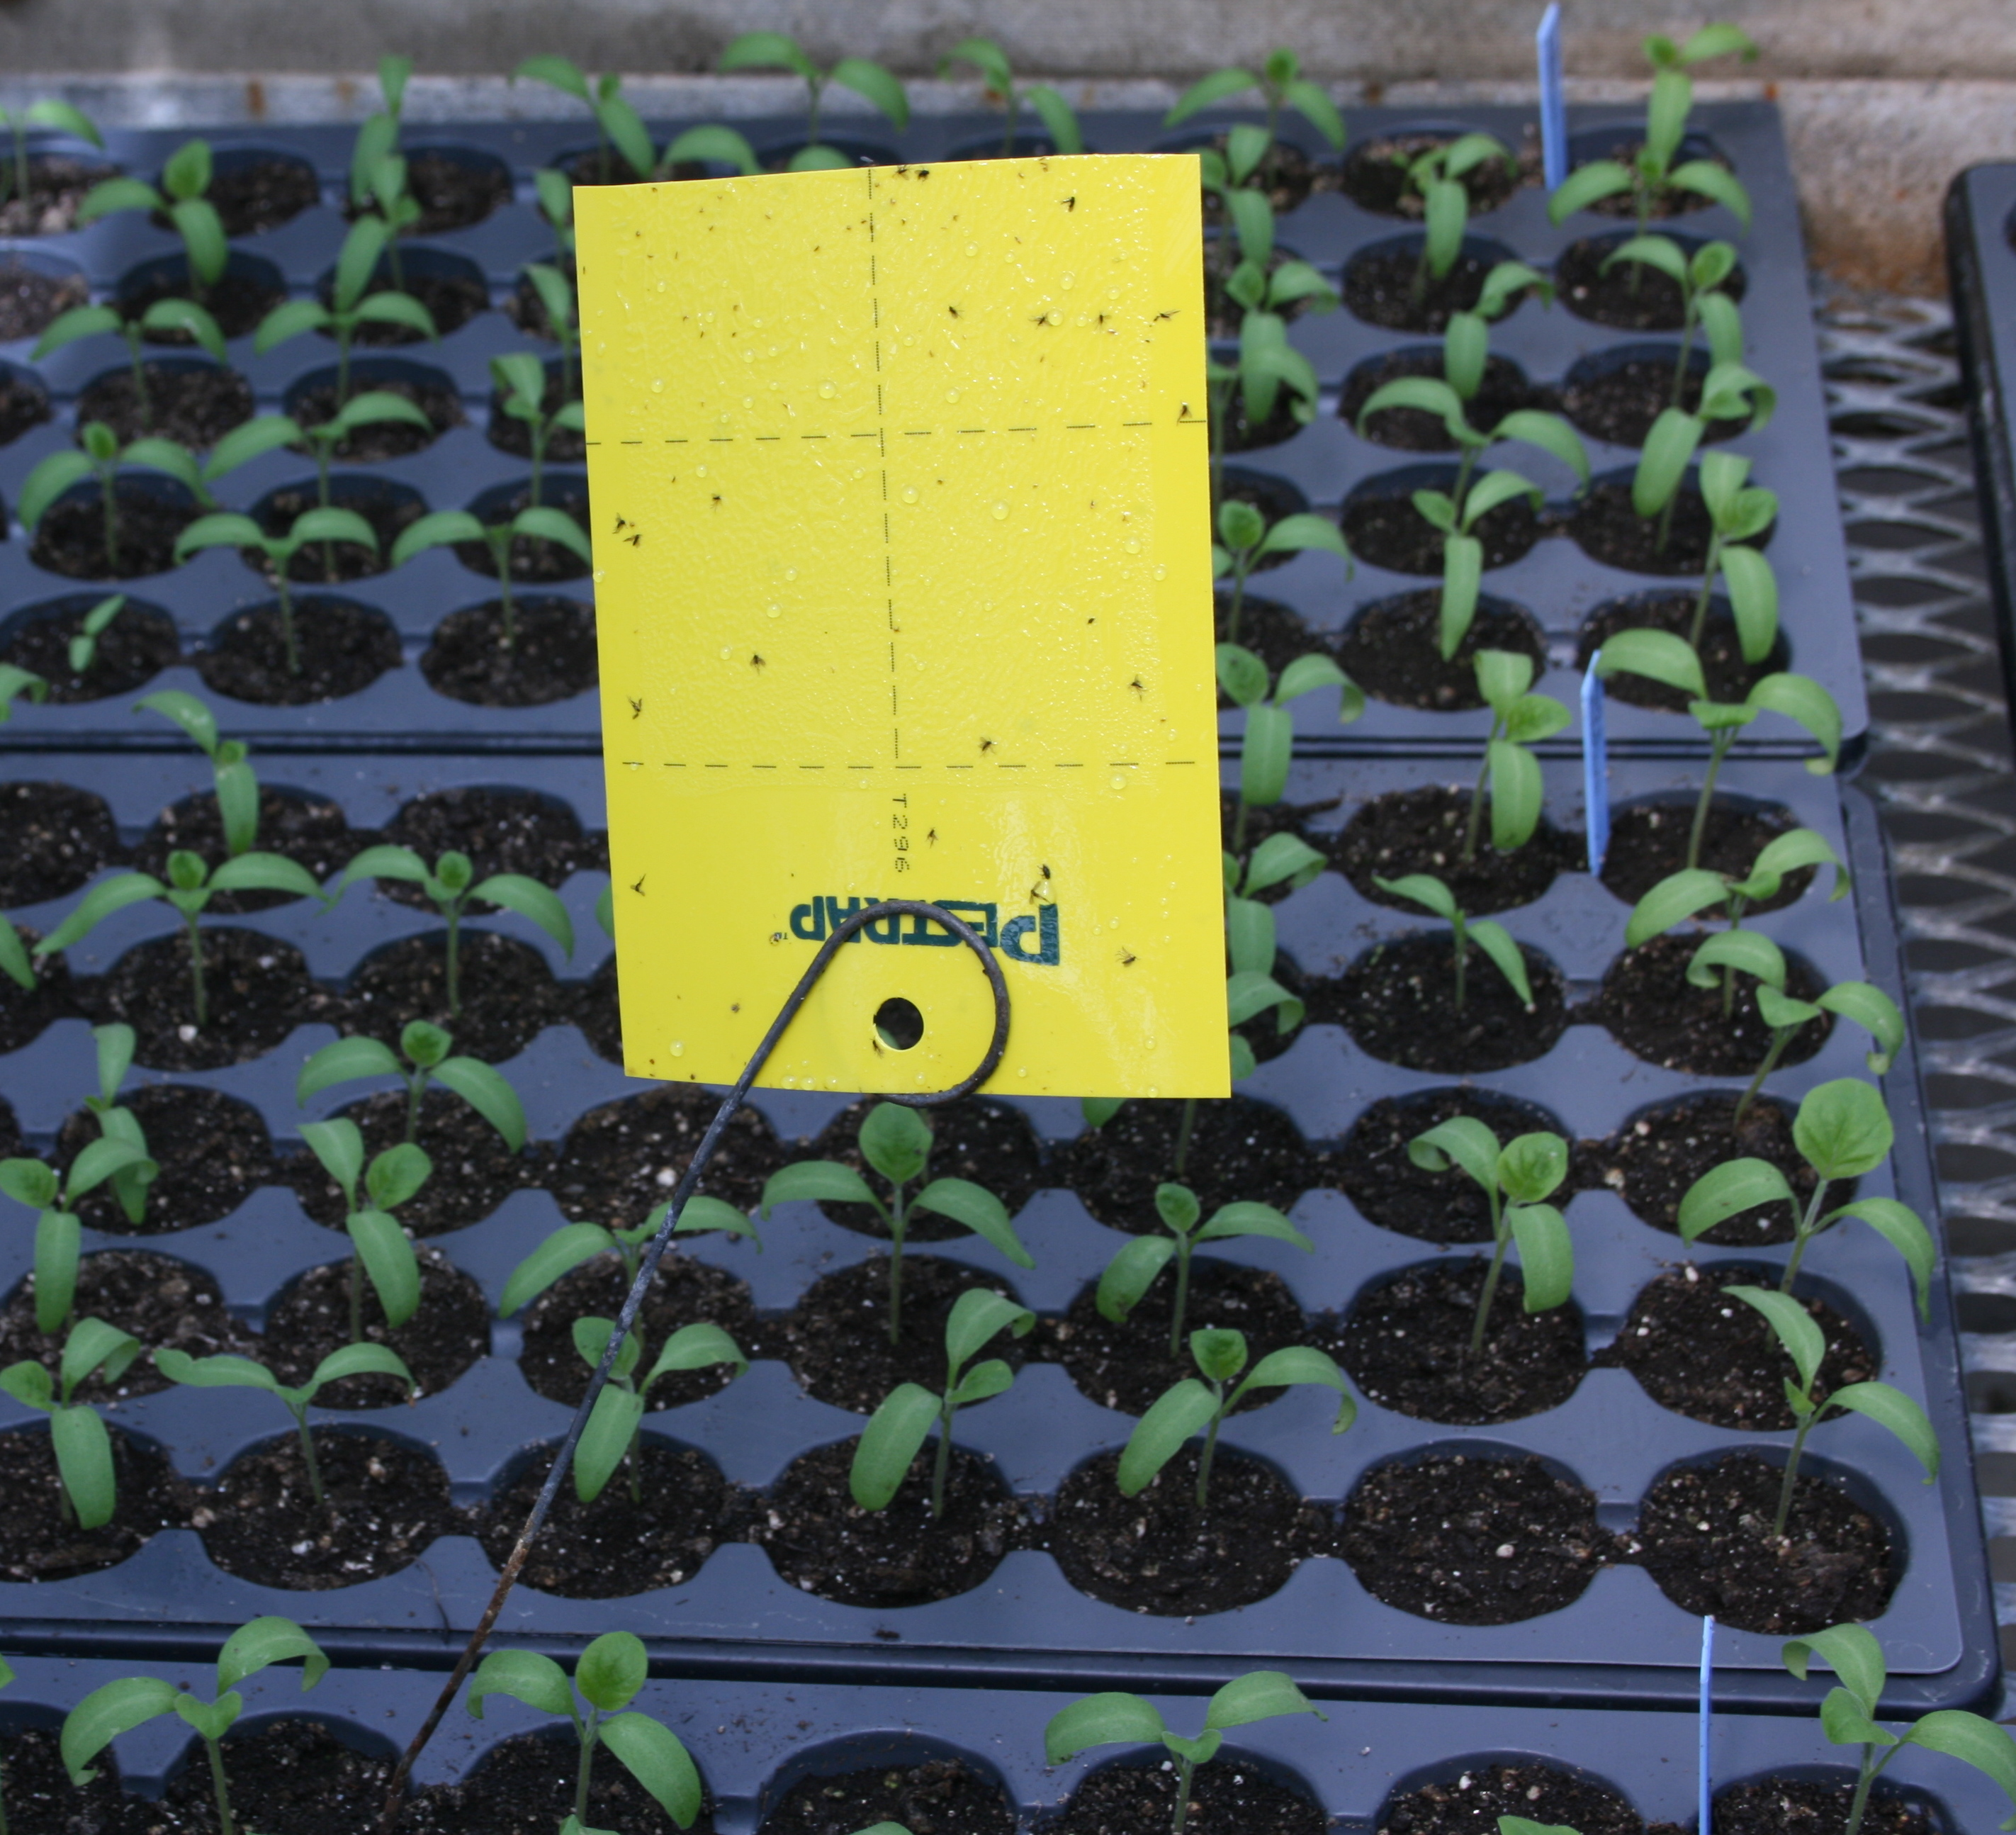 yellow sticky card for monitoring insect pests in a greenhouse